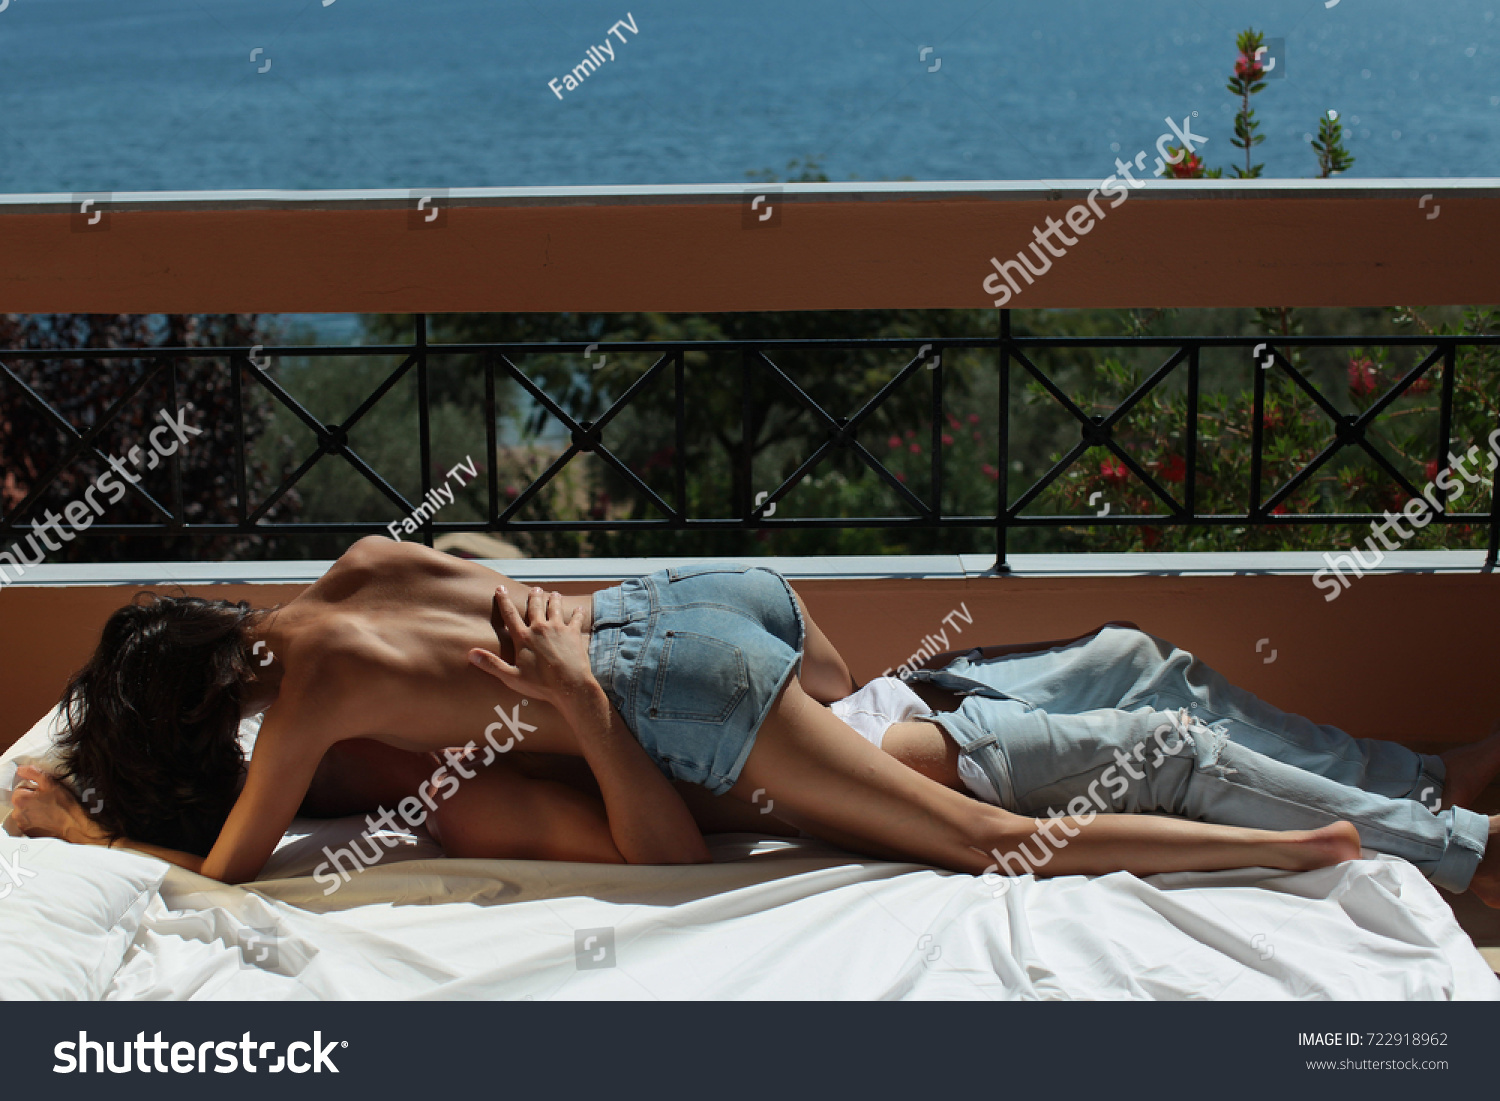 Share your Yung girls hote sex love kissing sexy photo here casual